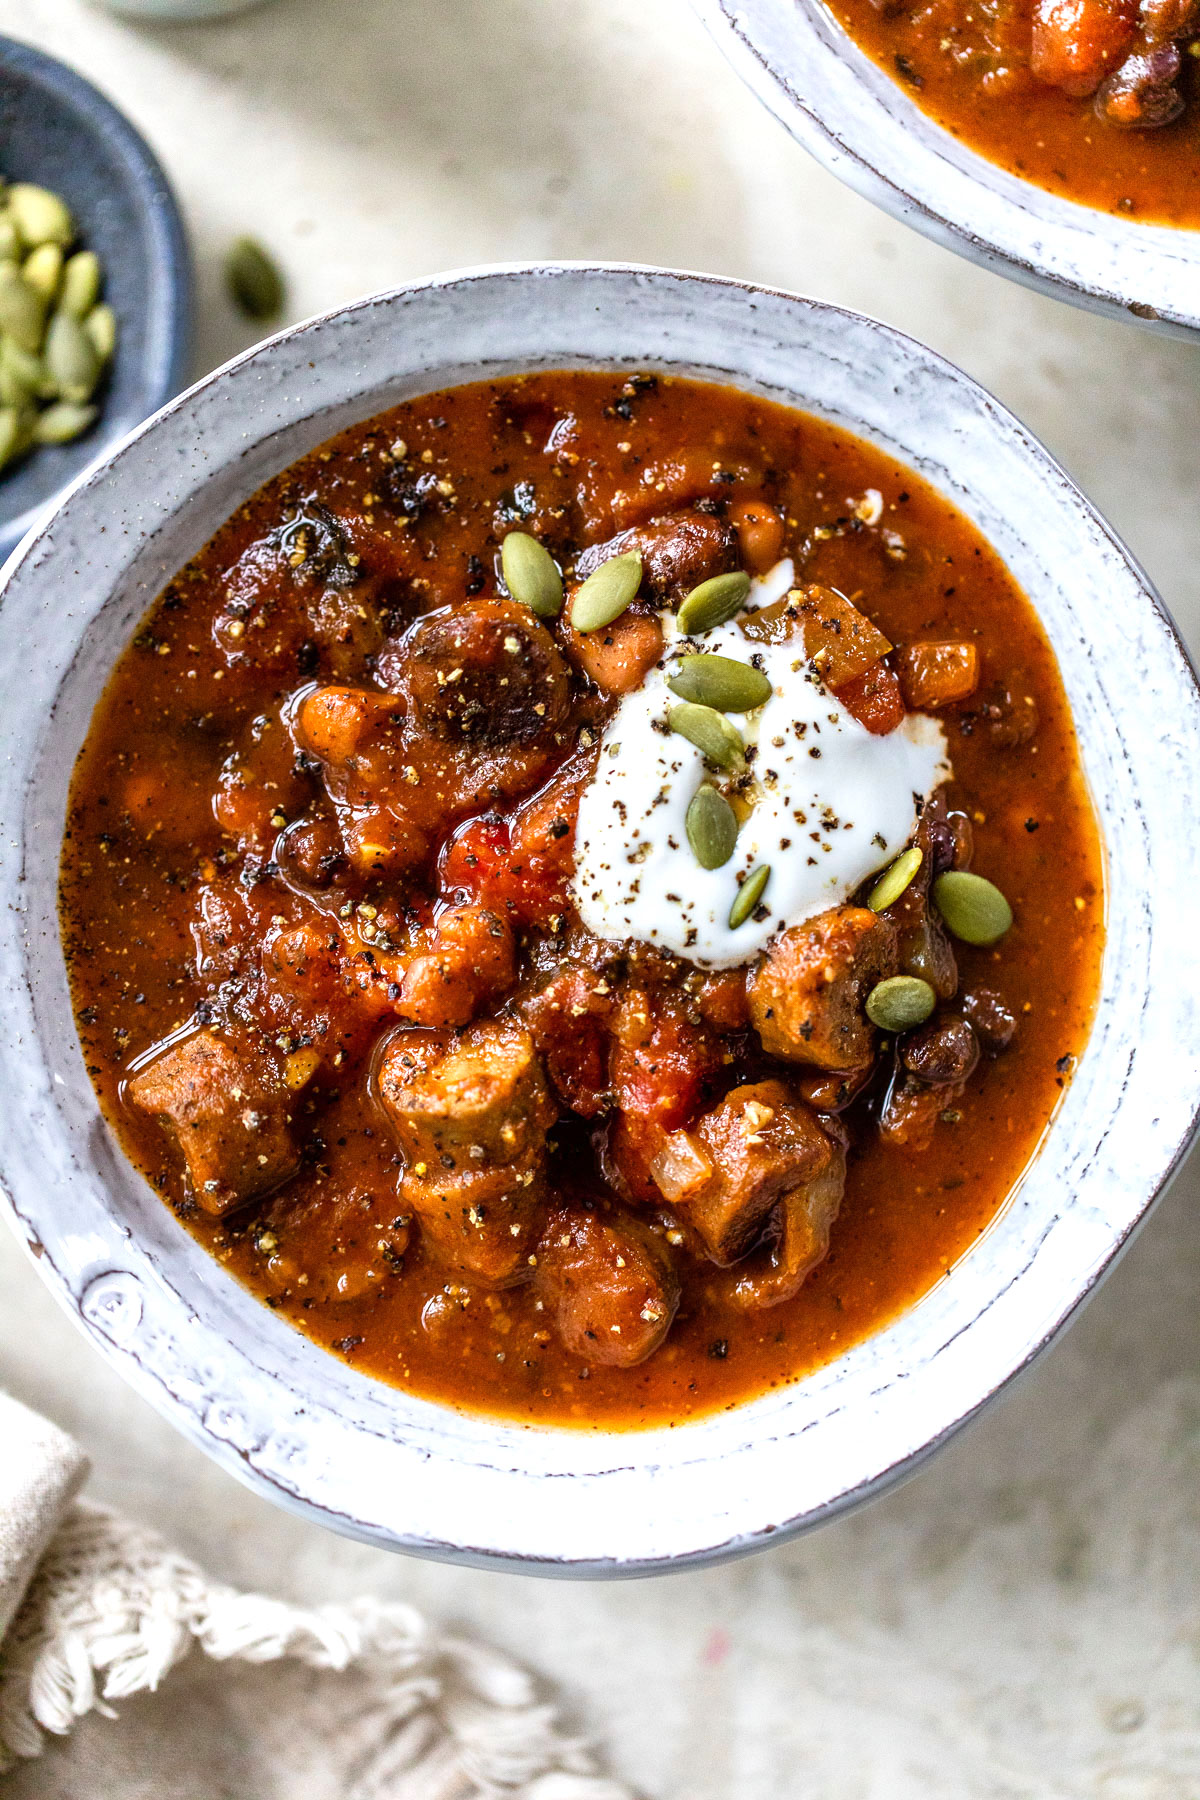 close up photo of a bowl of chili with beans and sausage